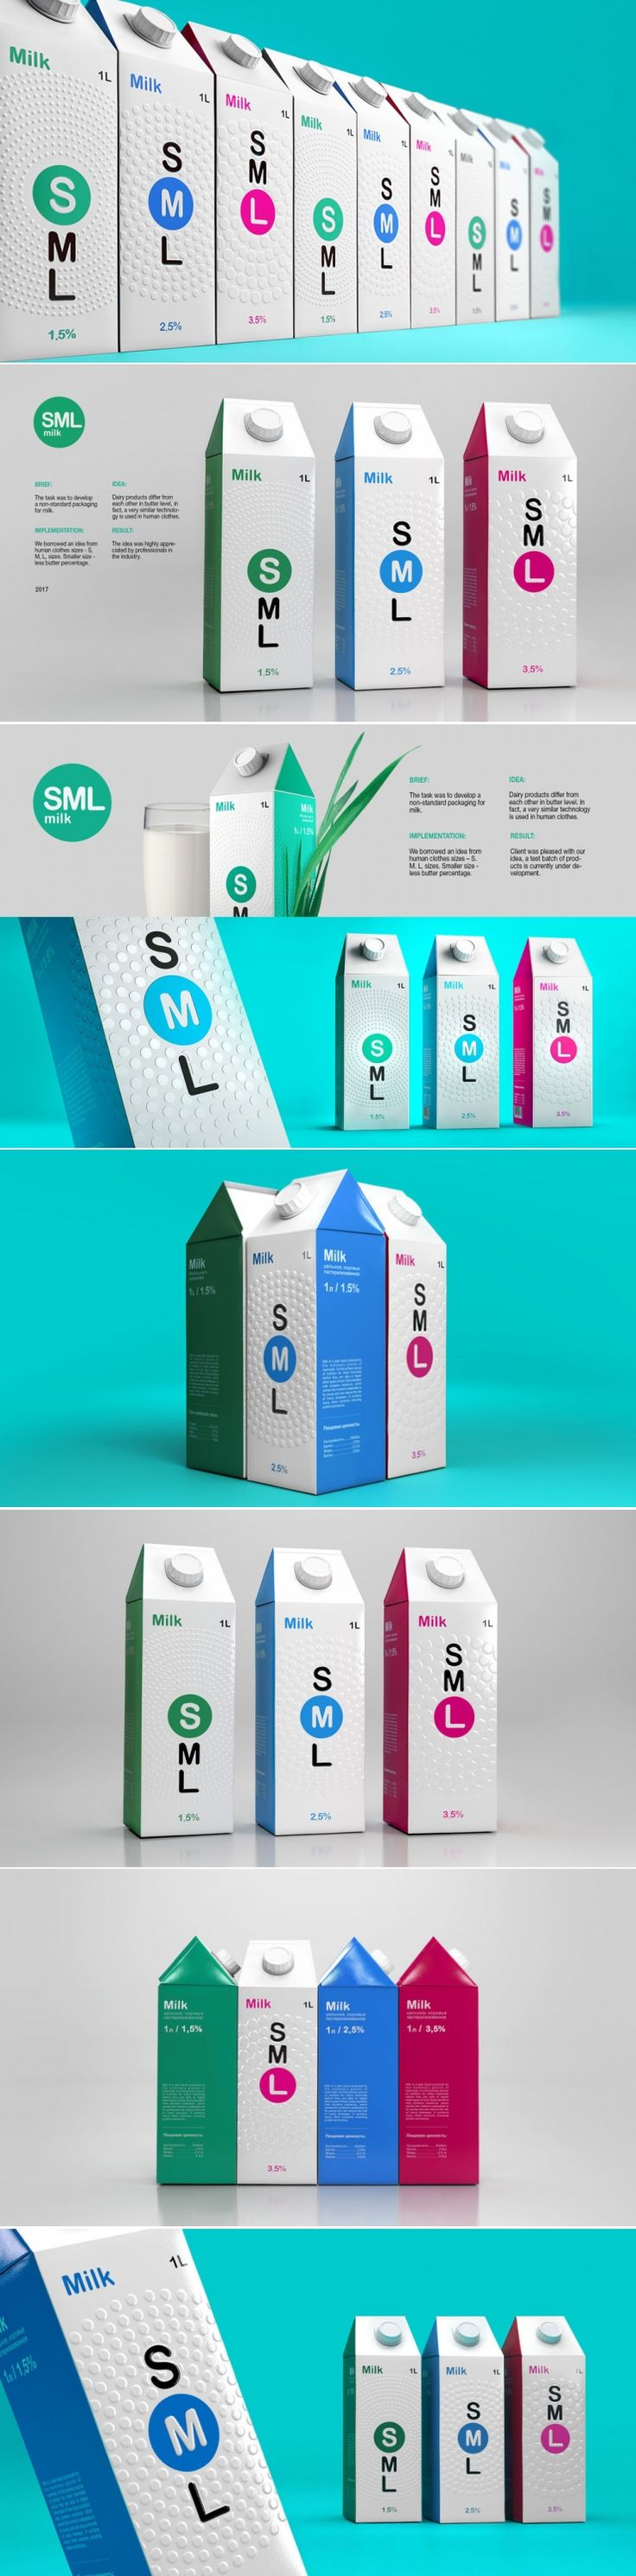 How SML Milk Used Clothing Sizes for this Inventive Design Concept — The Dieline | Packaging & Branding Design & Innovation News